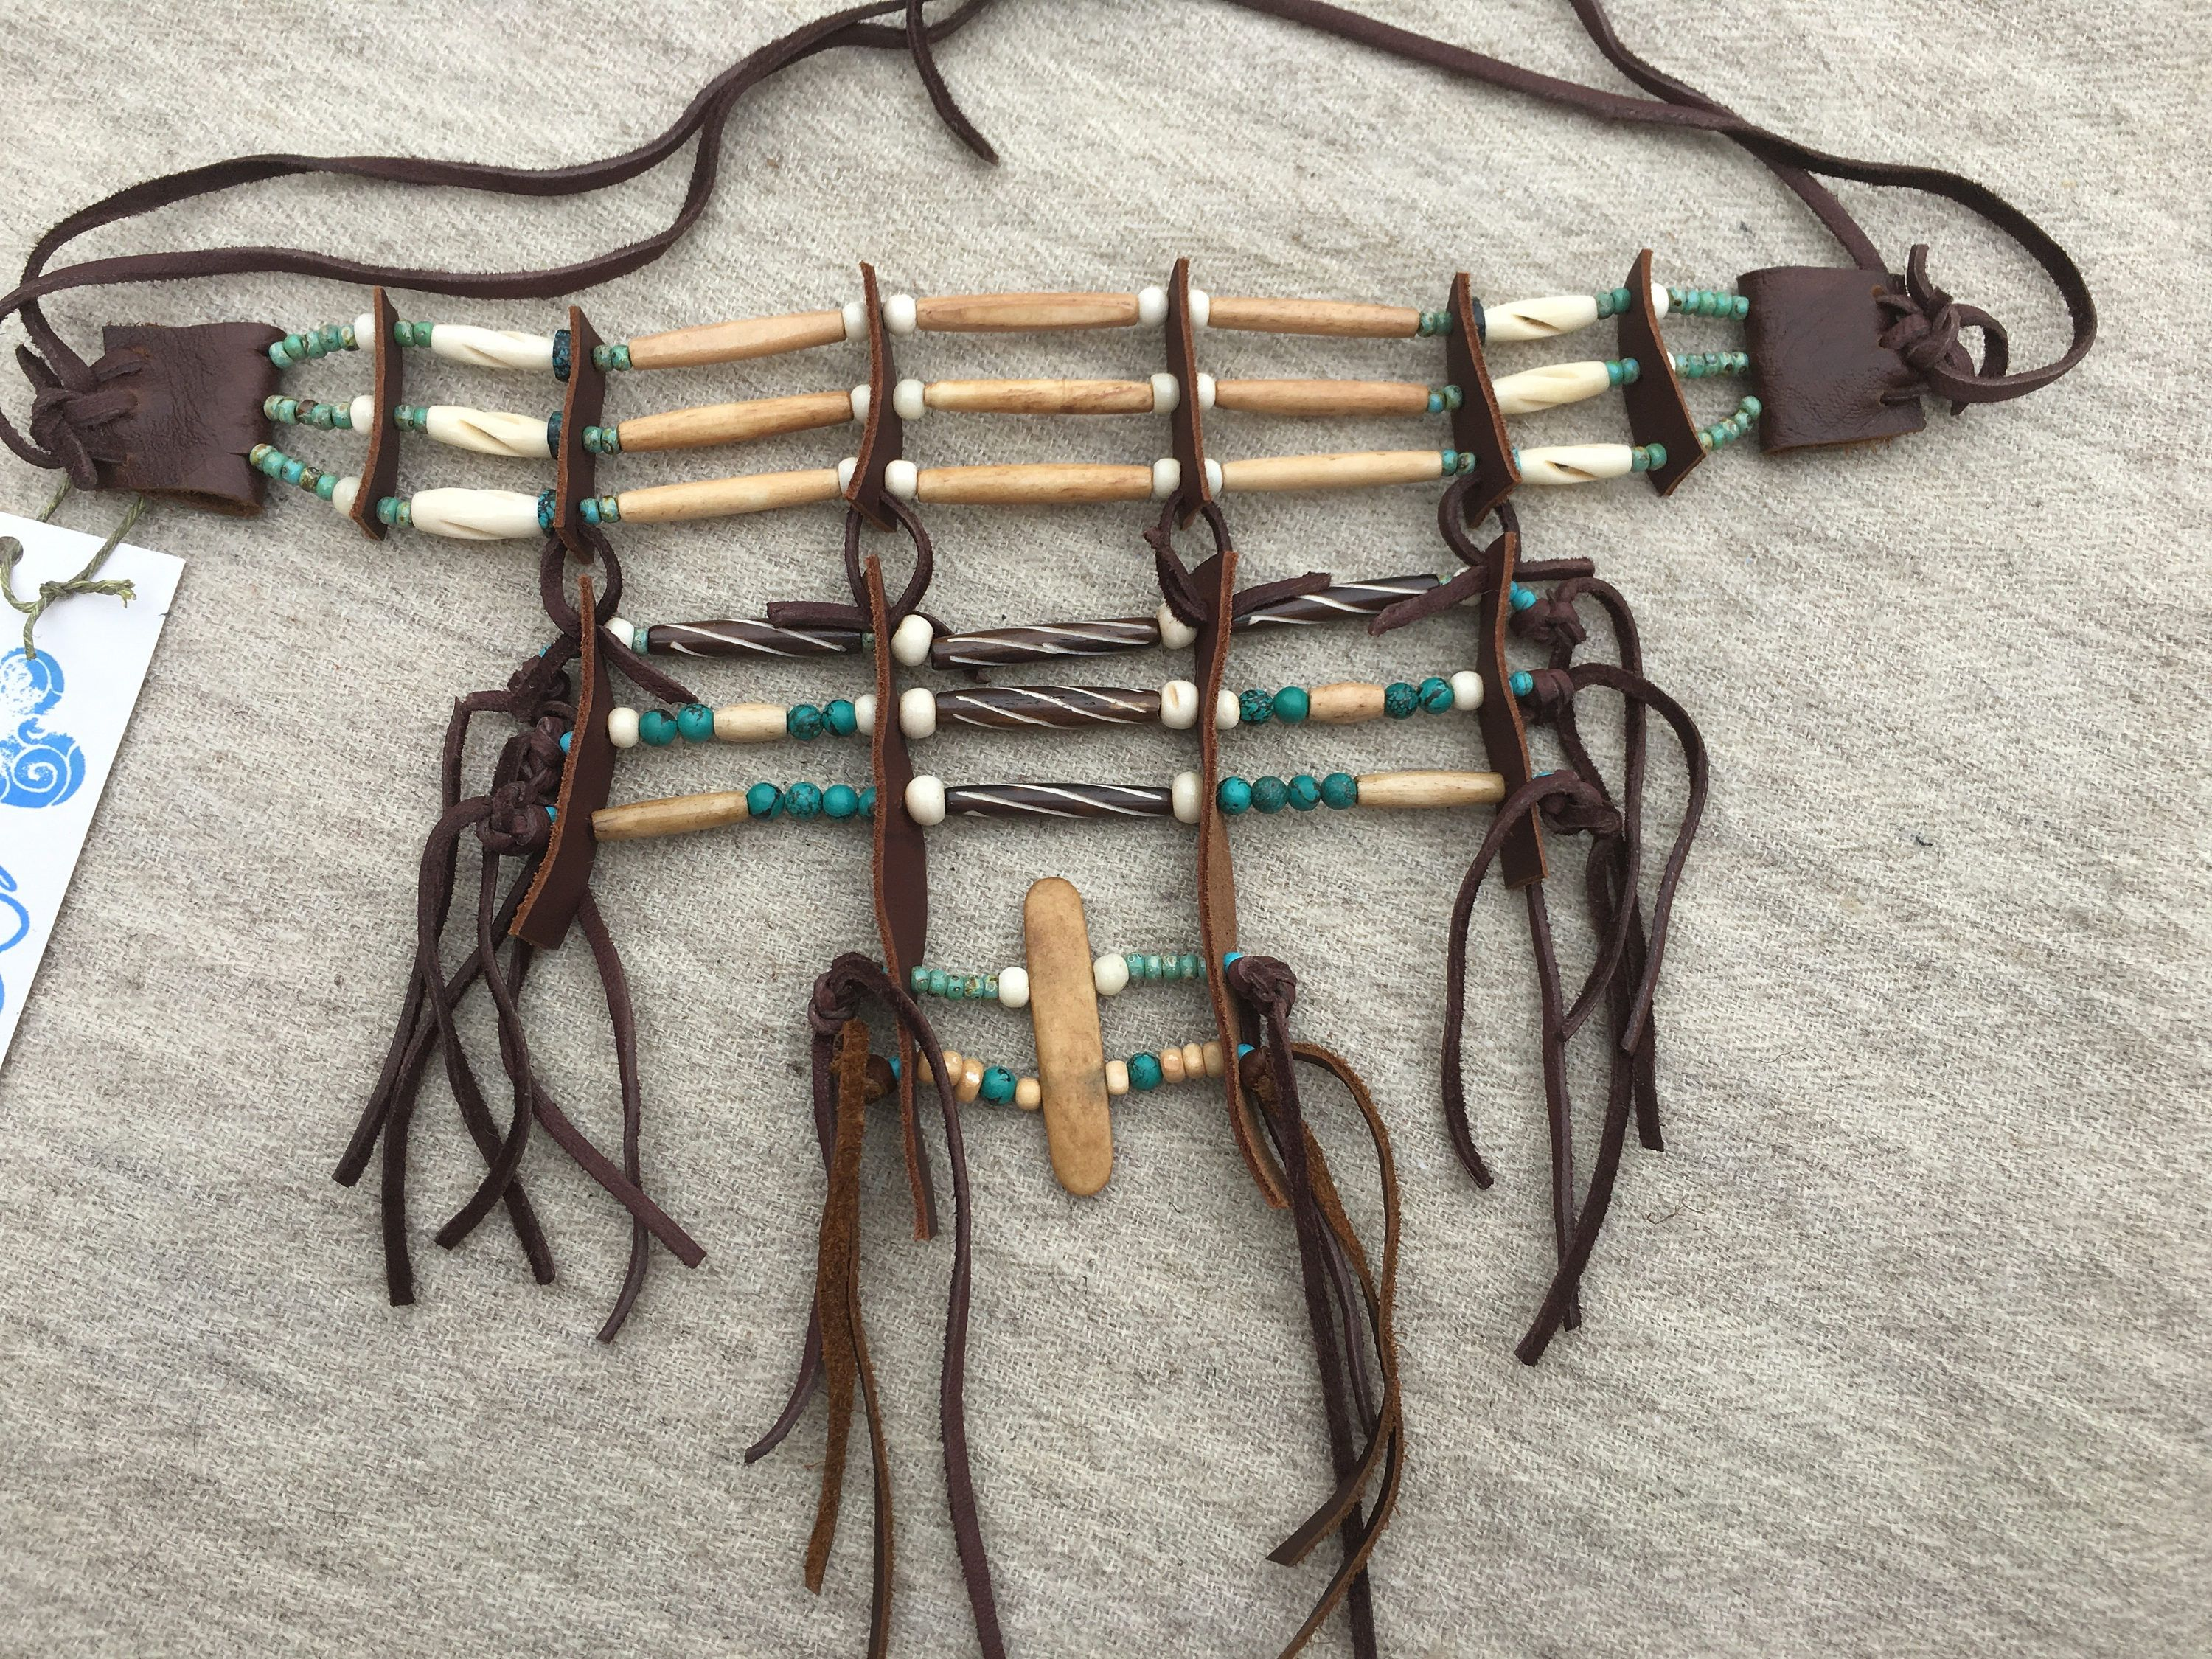 rehcy feathered spirit an breastplate pipe with made american by agate sunsetspirit arrowhead necklace store hair feathers leather native sunset beads and inspired